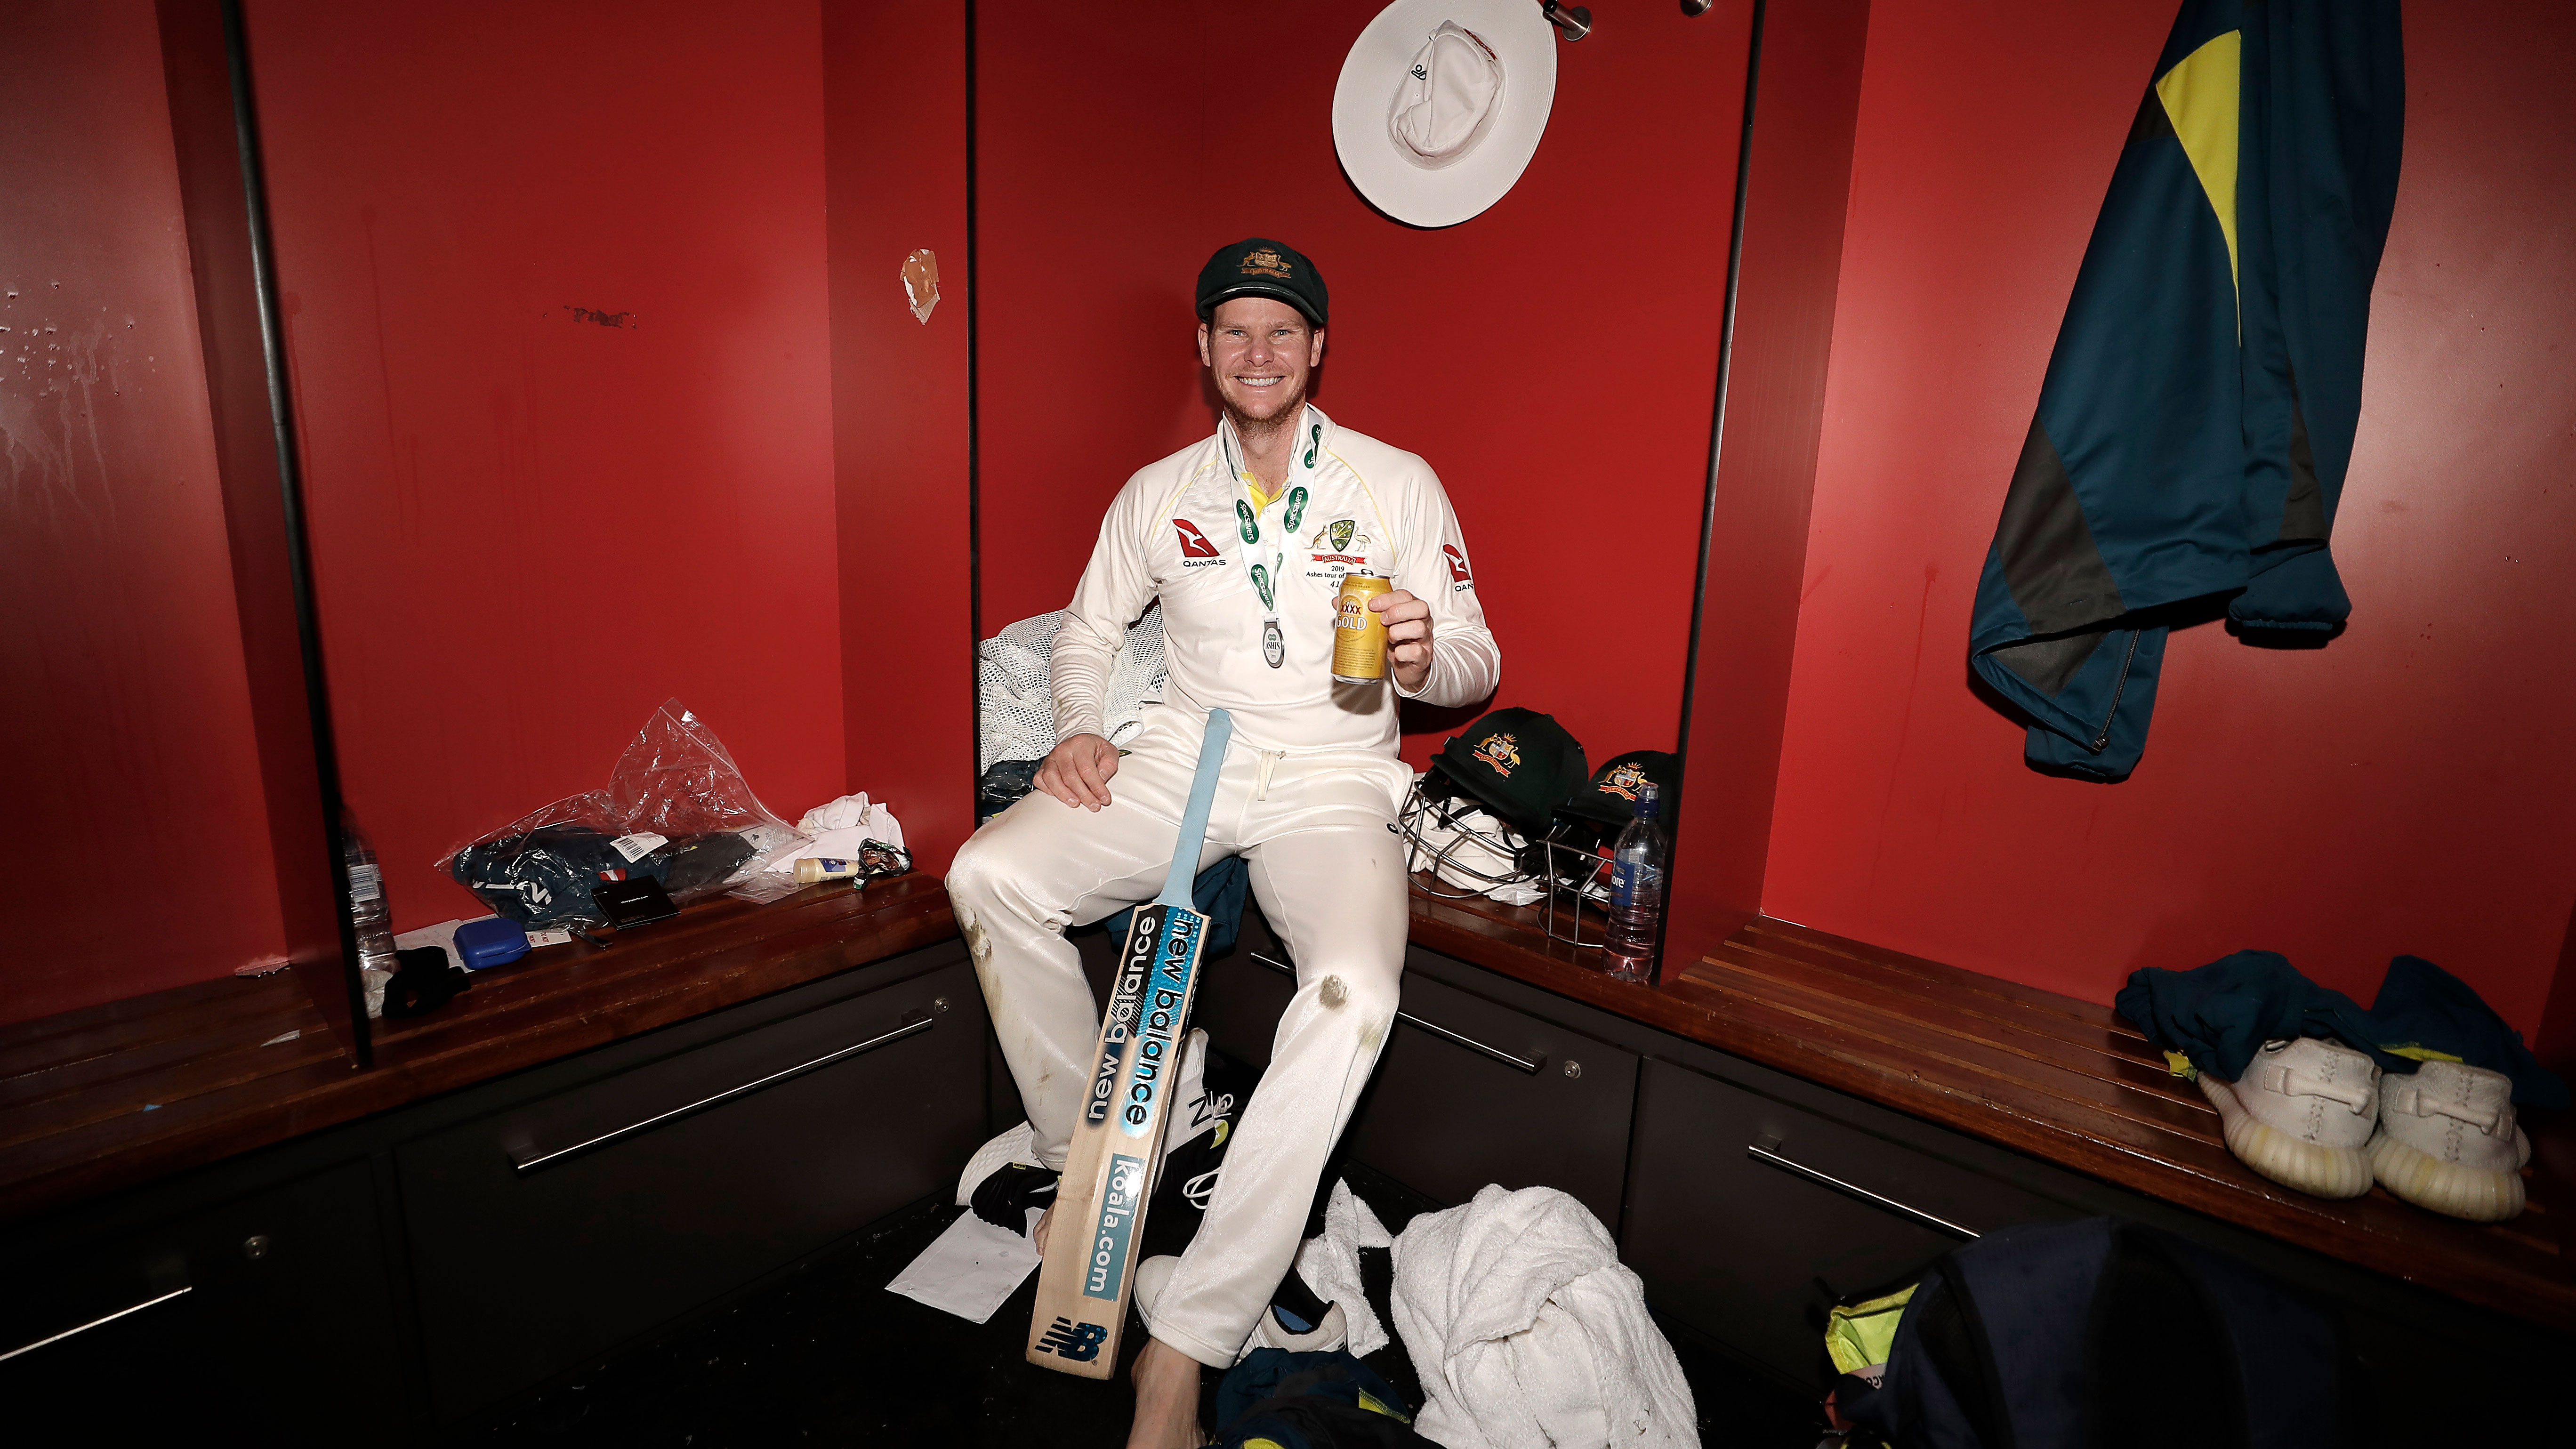 Steve Smith in a quiet moment of reflection following an extraordinary Test match of world class batting from the best batsman in the world.